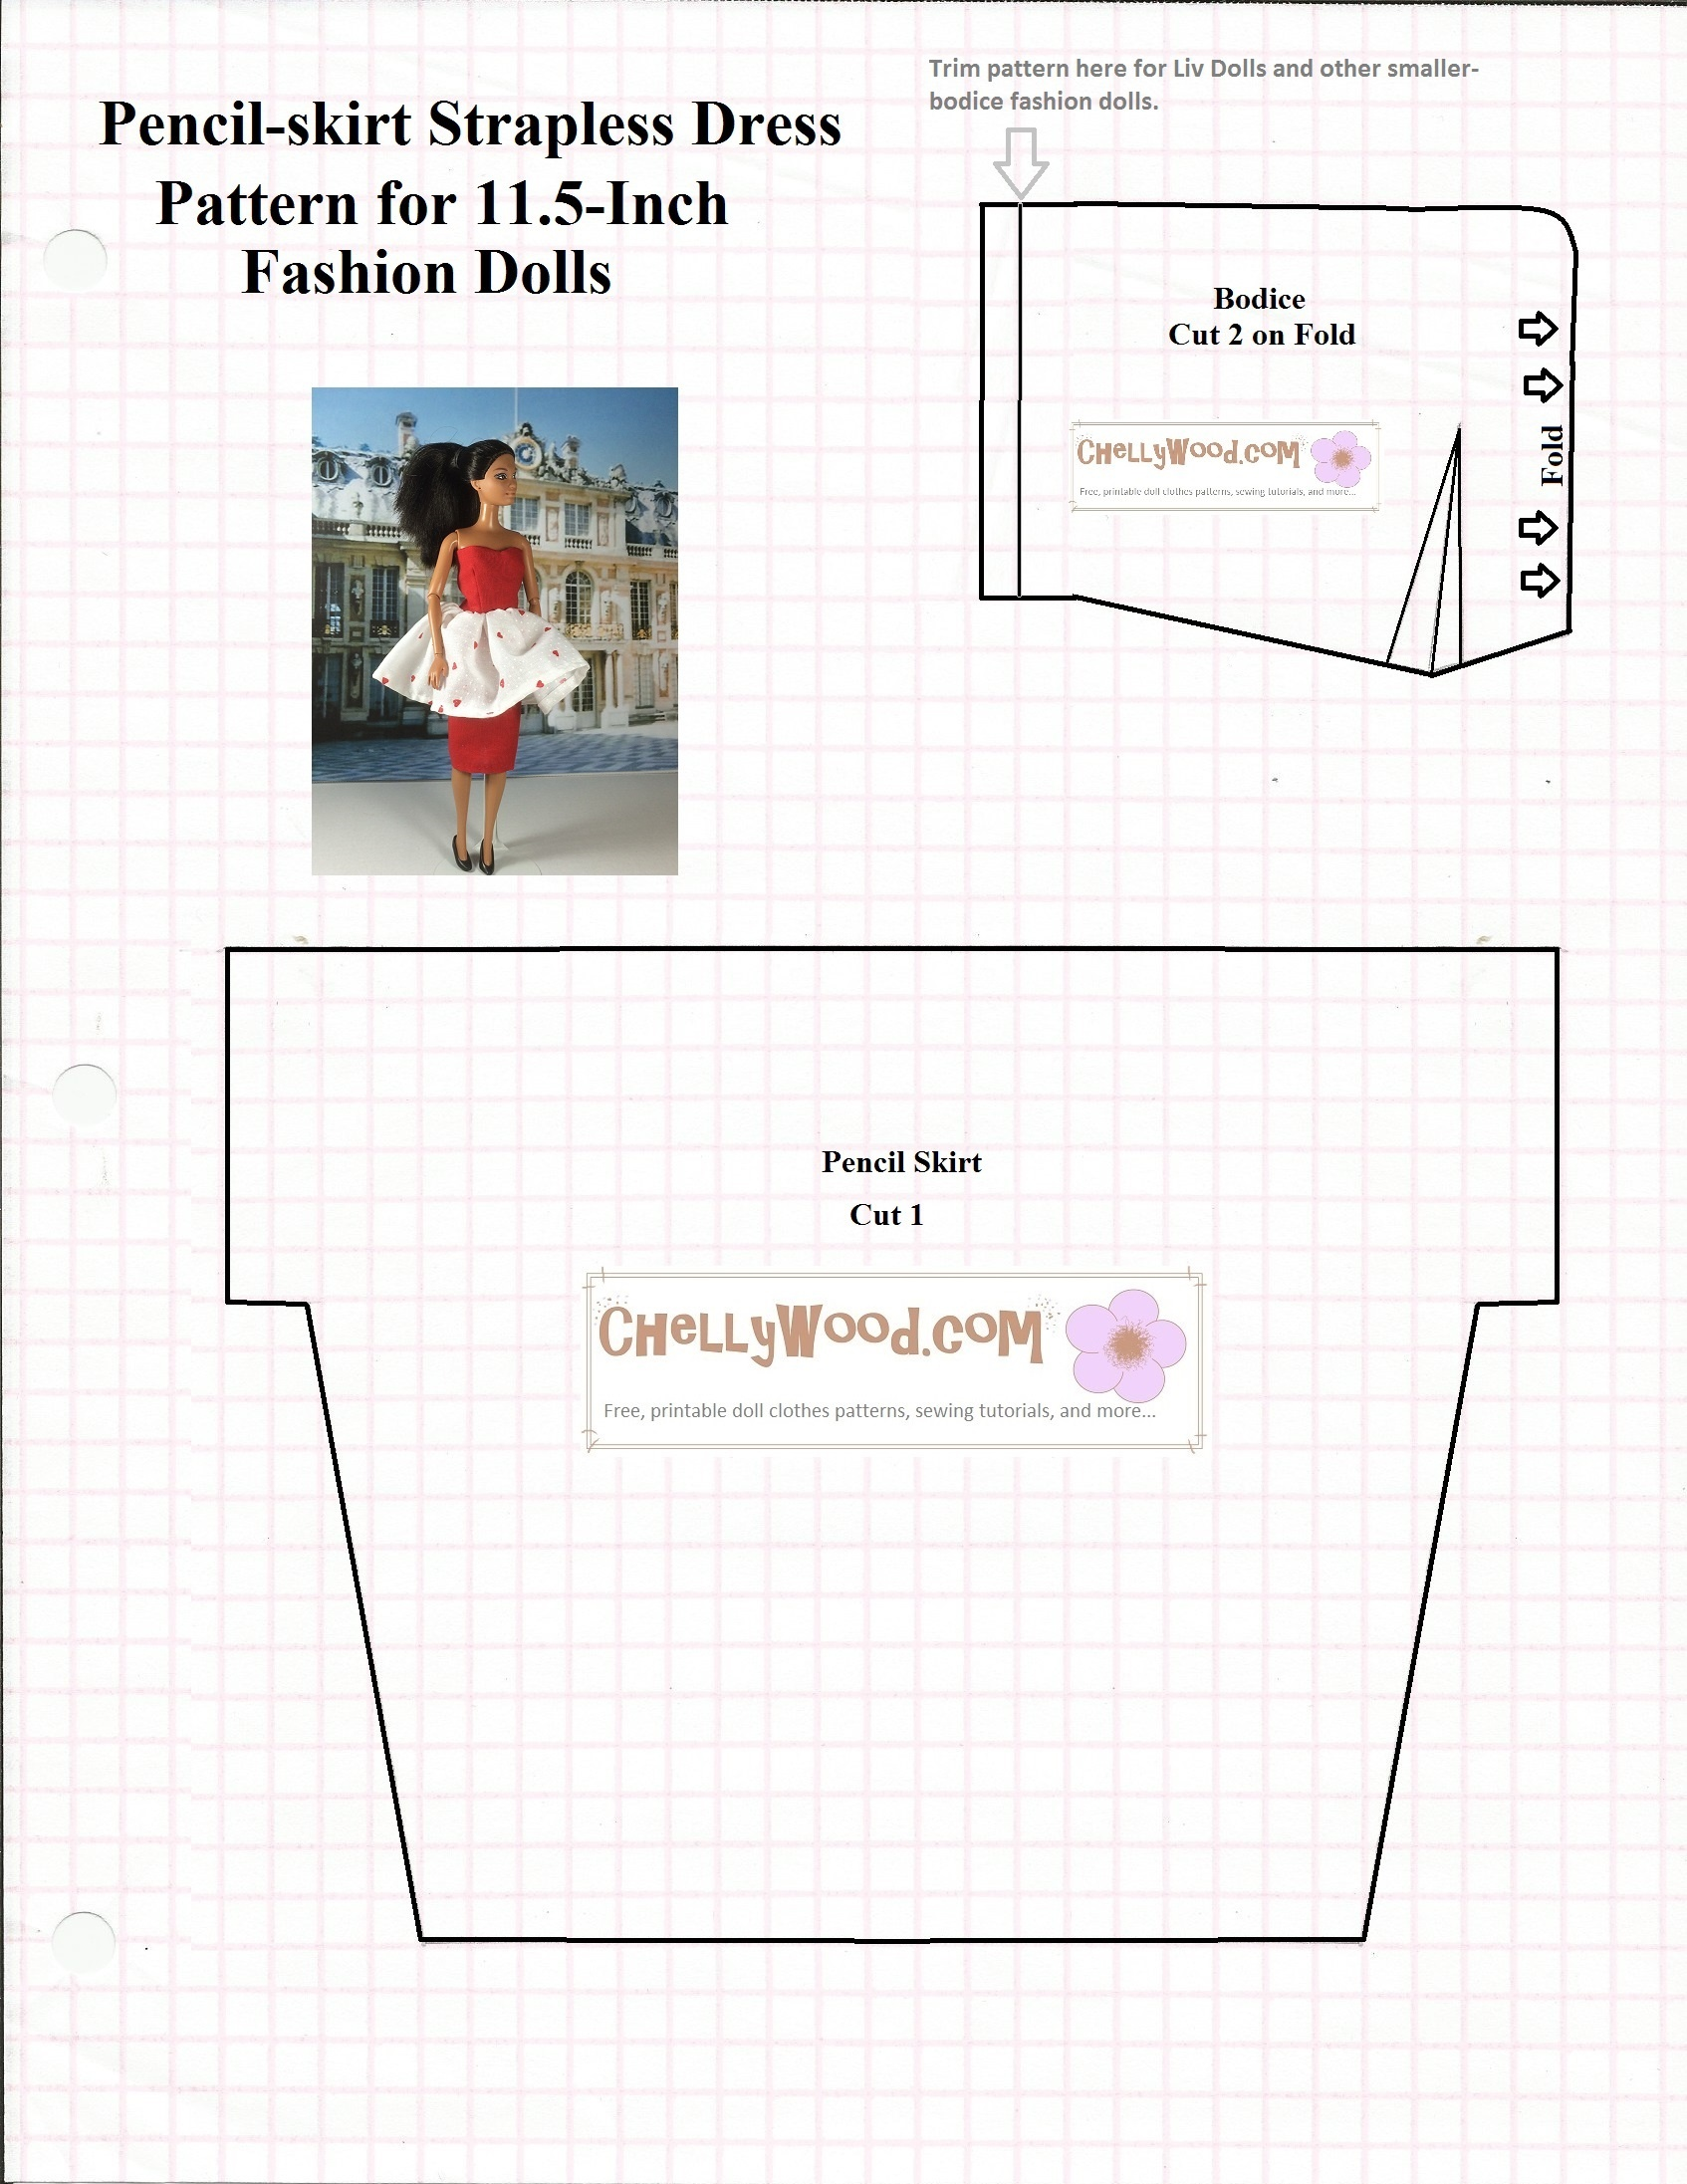 Old Pattern Page – Free, Printable Doll Clothes Sewing Patterns For - Free Printable Patterns For Sewing Doll Clothes